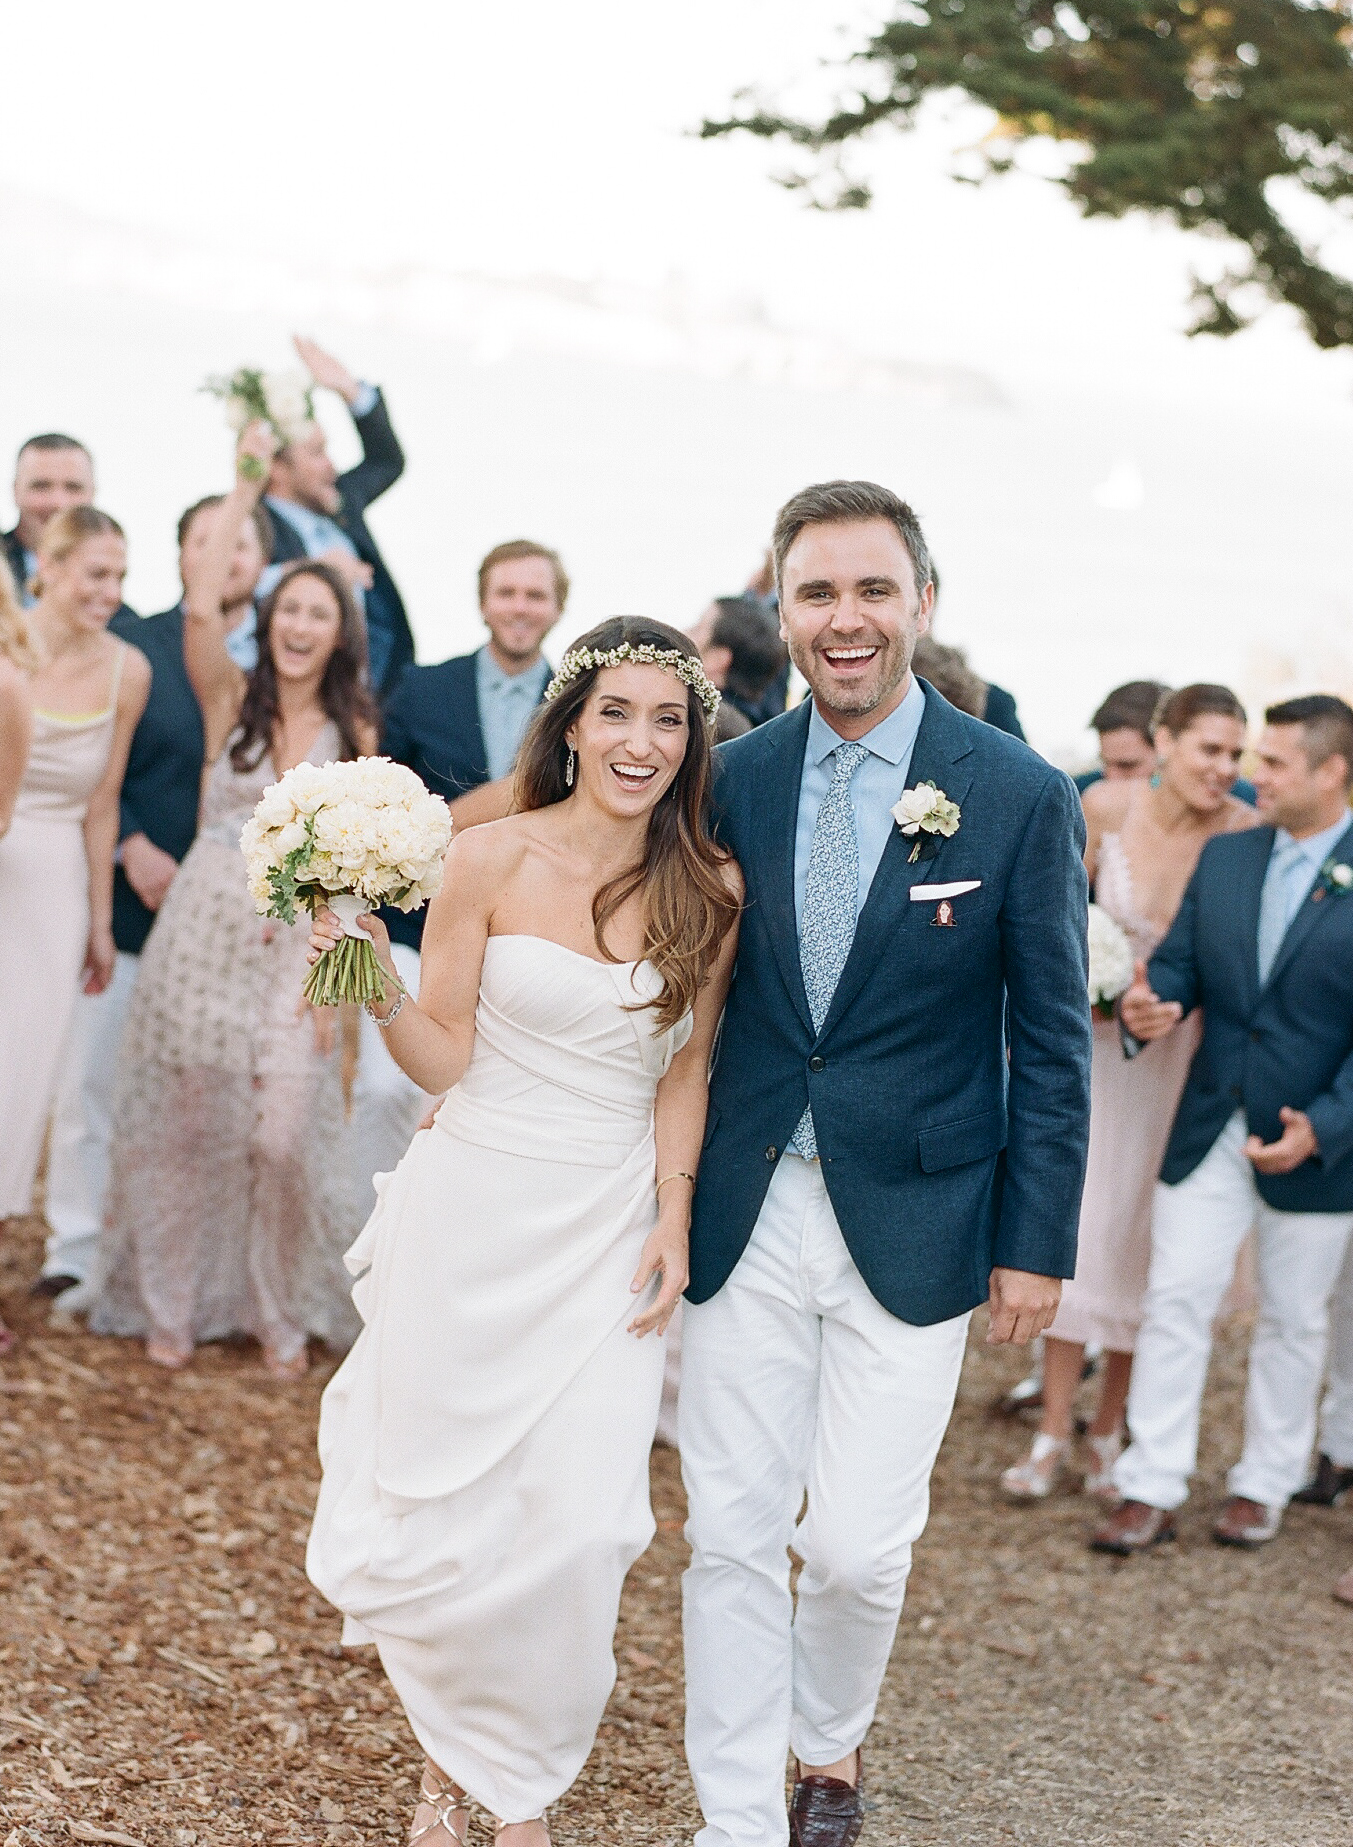 Heather & Crain with their bridal party in San Francisco